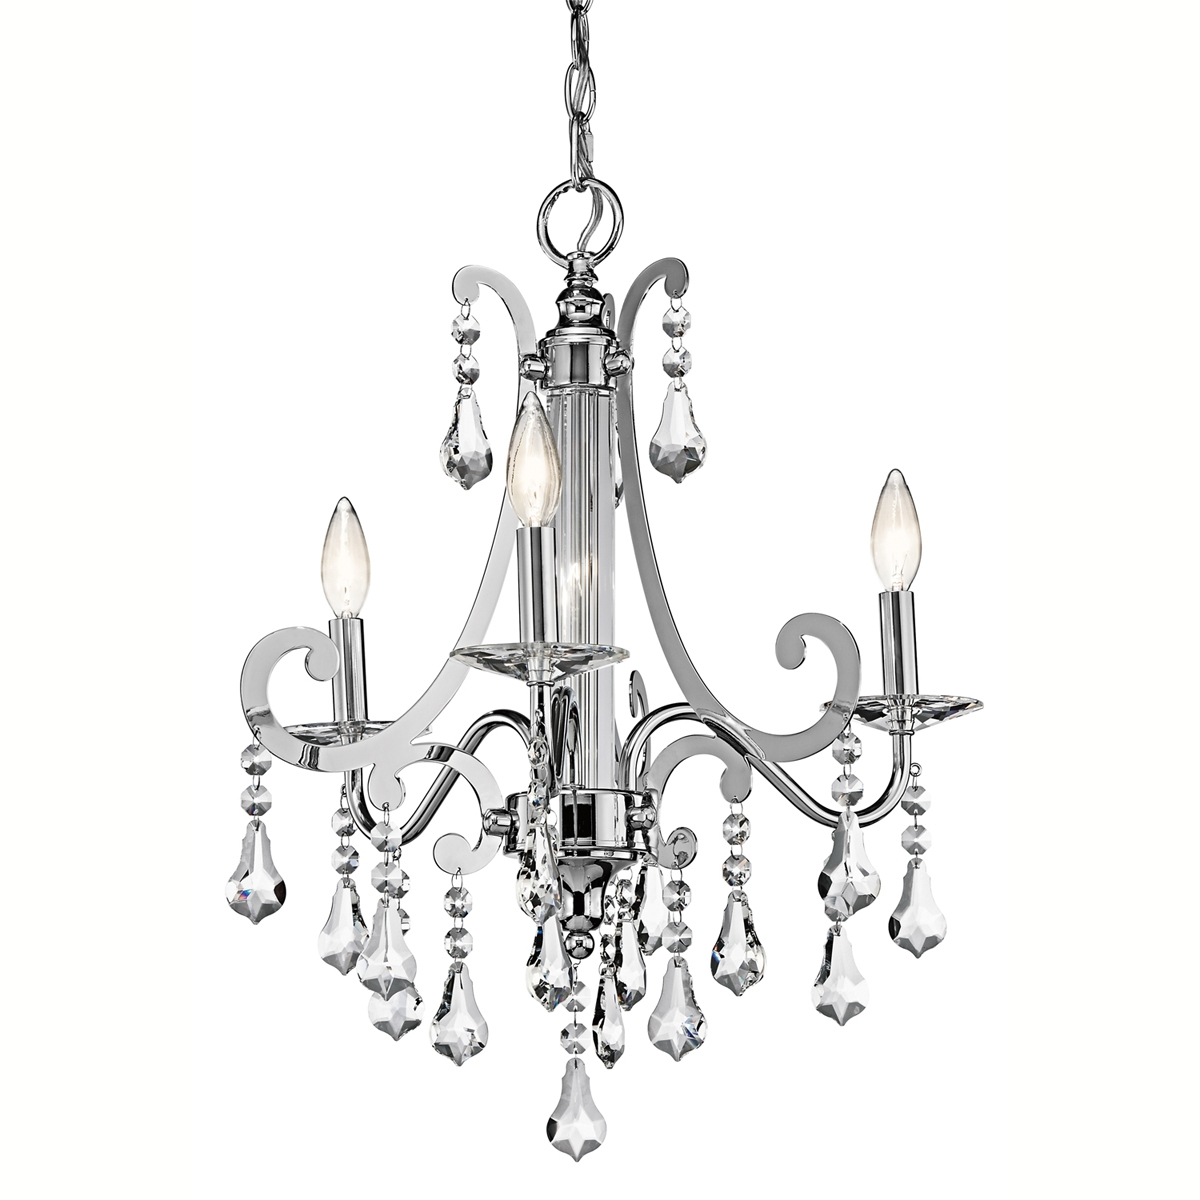 Kichler Lighting 42544ch Leanora Single Tier Small 3 Light Regarding Small Chrome Chandelier (Image 10 of 15)